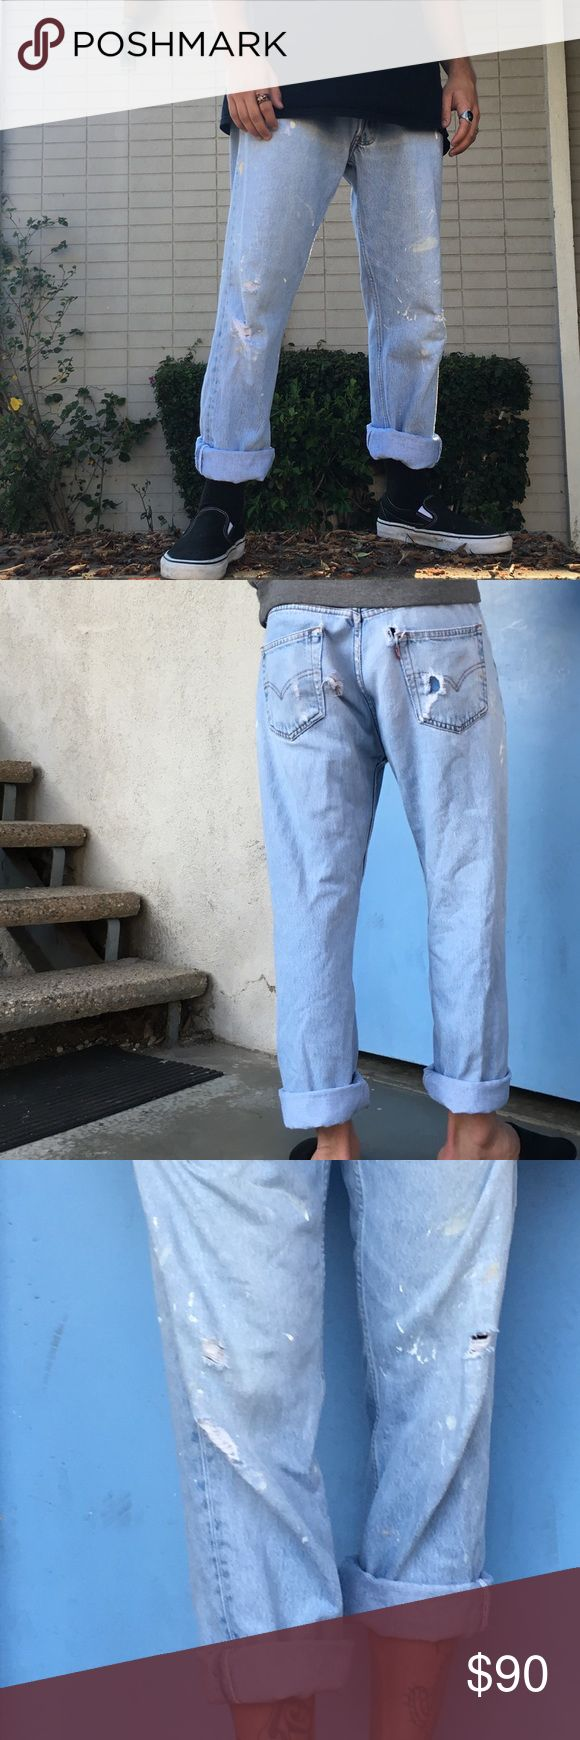 """RARE! Vintage distressed Levi's they are worth a lot more than my listed price. I've been on many journeys to find a pair exactly like this for myself but alas, found them for men - could be unisex depending on size and desired fit. Button-up fly. 32x30 11"""" rise. Cuffed them for 'aesthetics' but they have a great bottom originally hemline. Straight leg. Shown on two different models both 32"""" waist but heights are 5'6 and 5'10"""" - they're so not some pair an 'artist' messed with - 100% vintage…"""